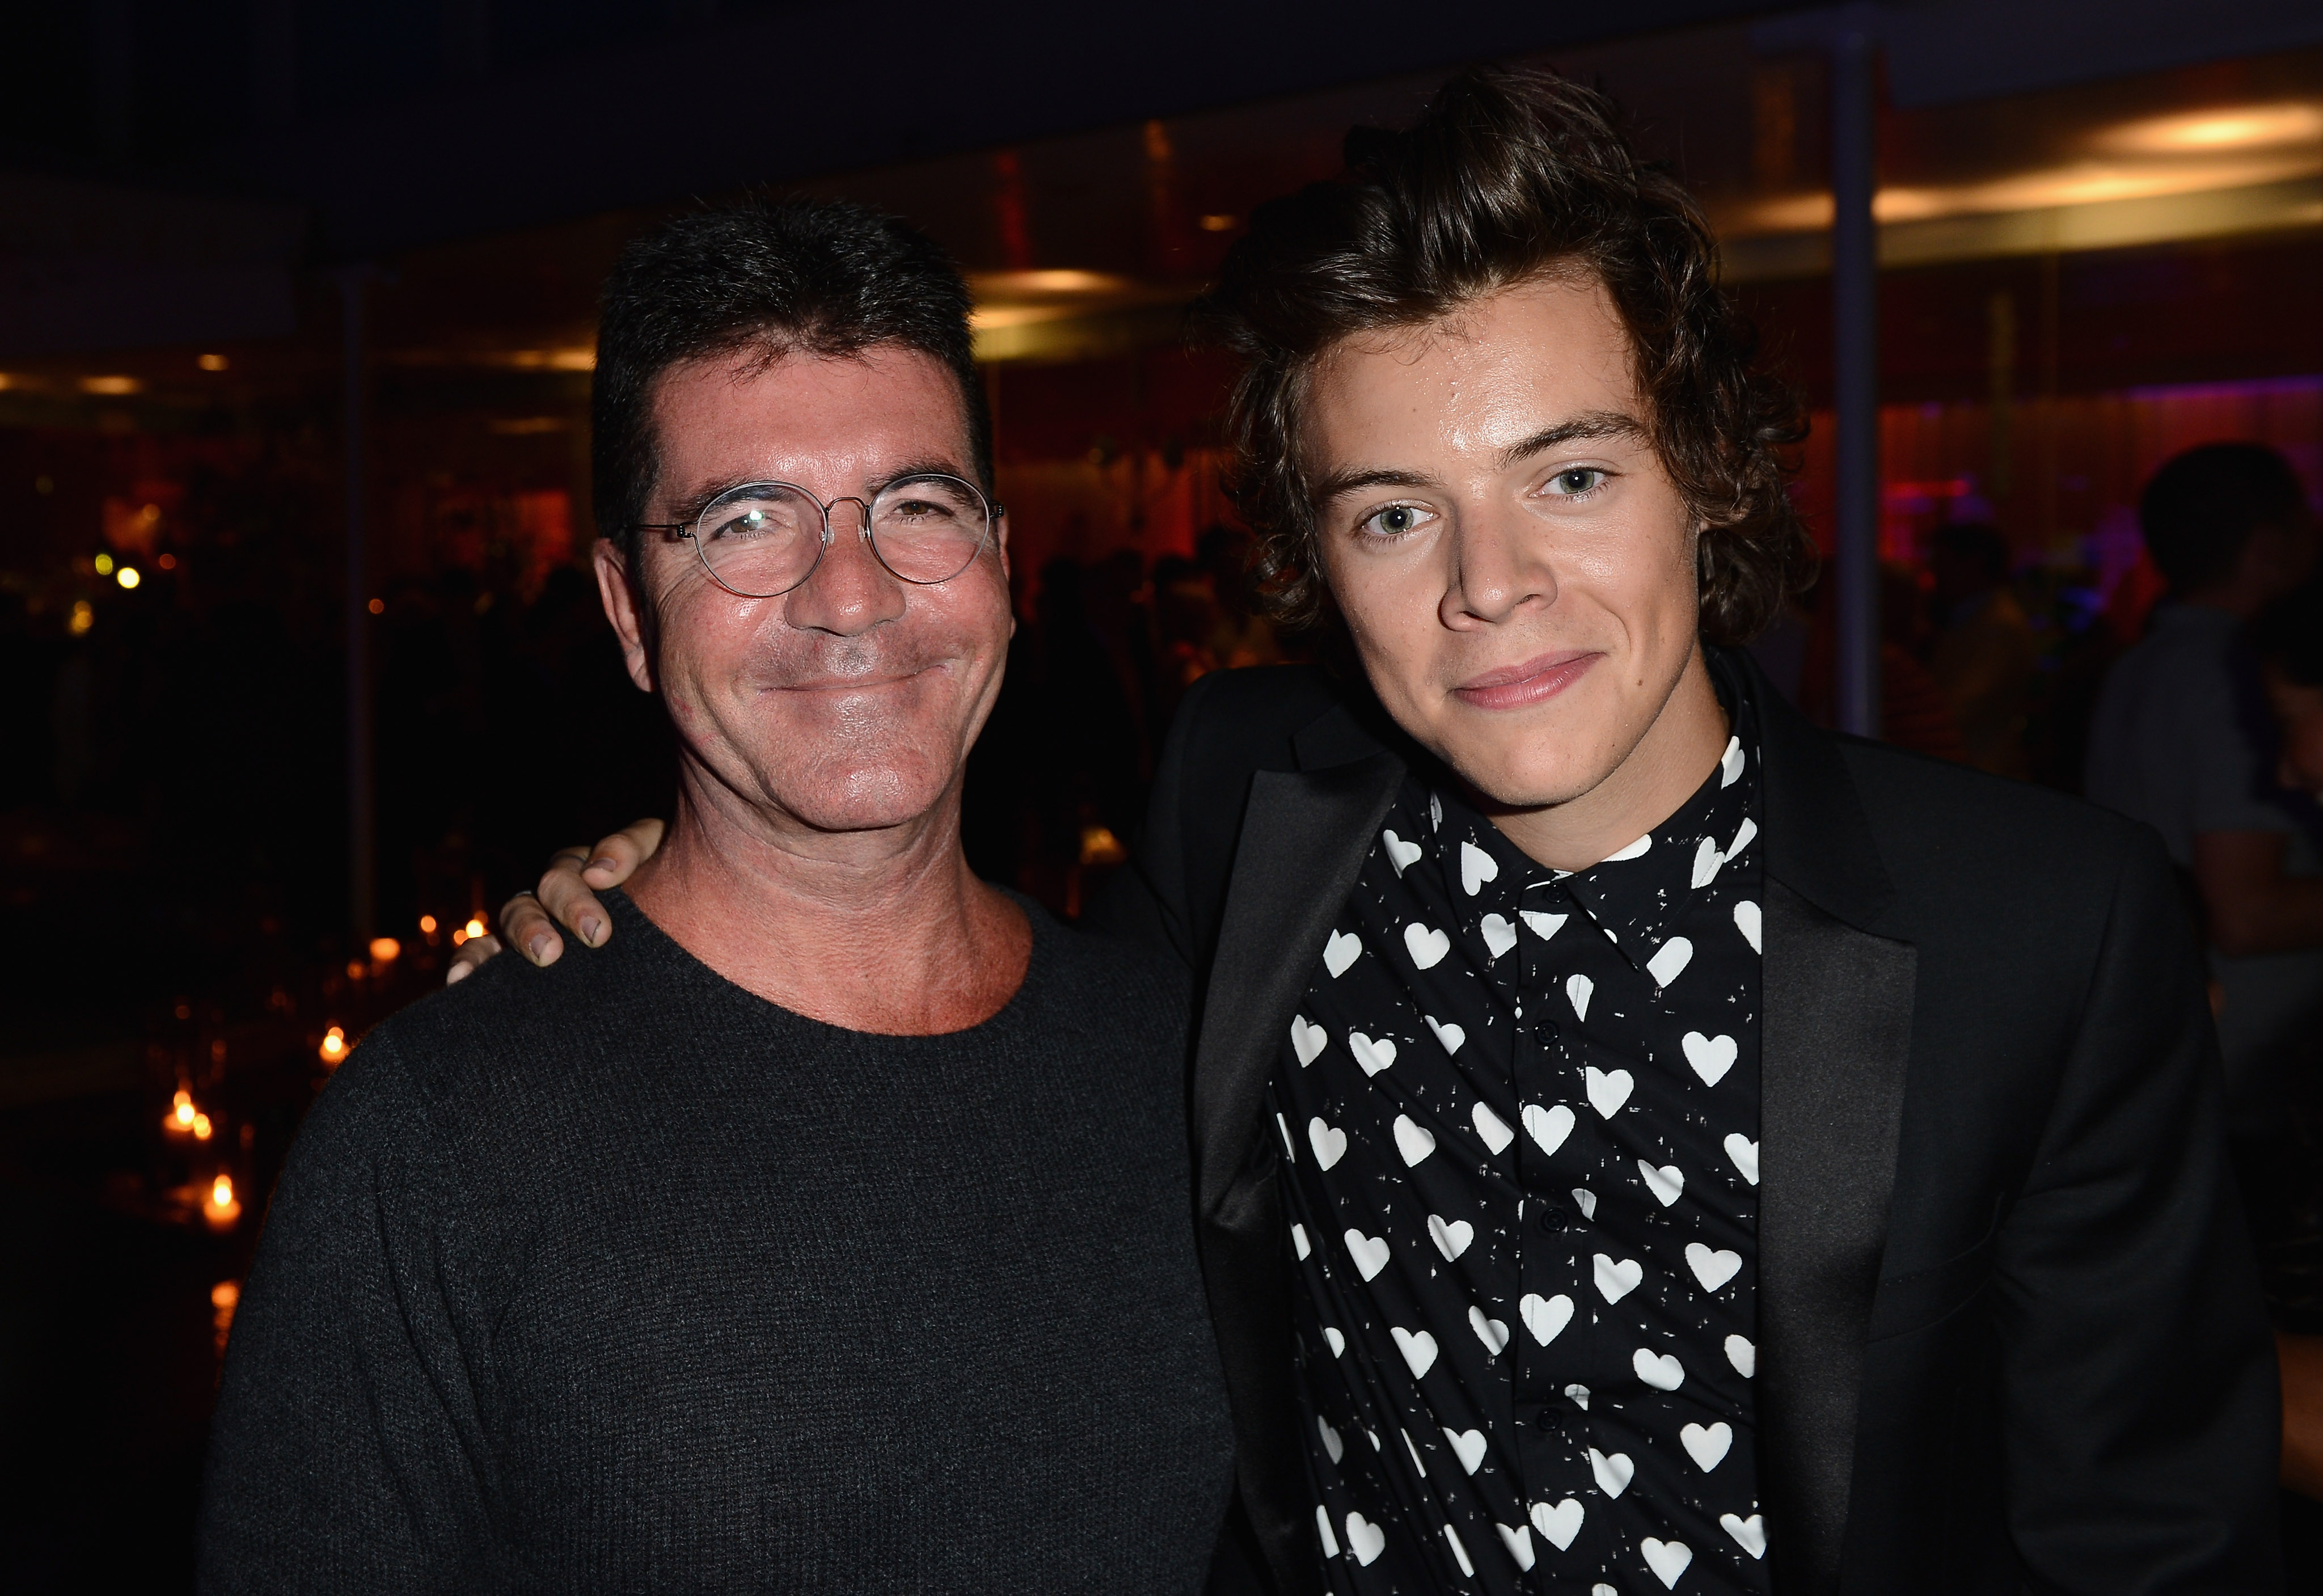 Simon Cowell is lining up Harry Styles for the new series of The X Factor